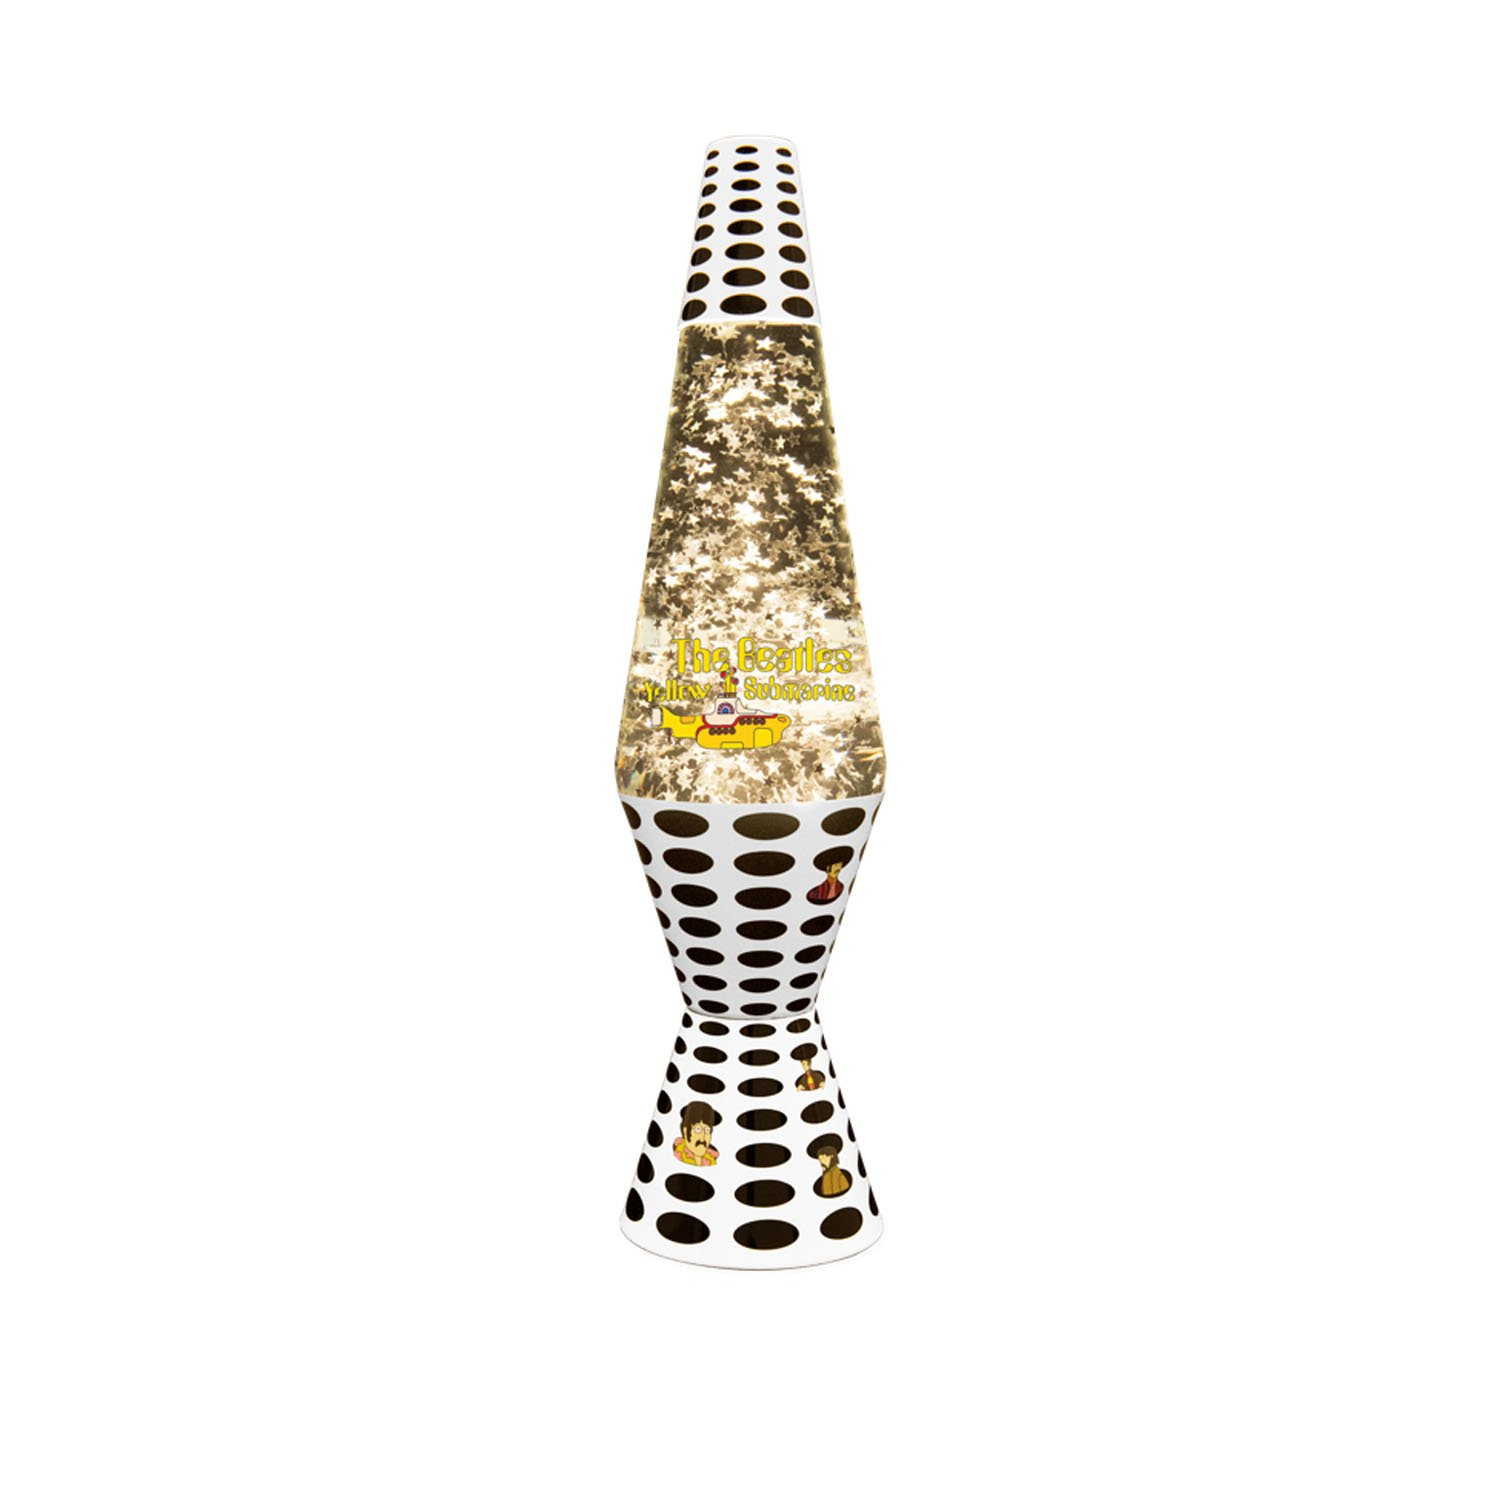 14.5-Inch Beatles Yellow Submarine Lava Lamp, Silver Star Glitter/Clear Liquid